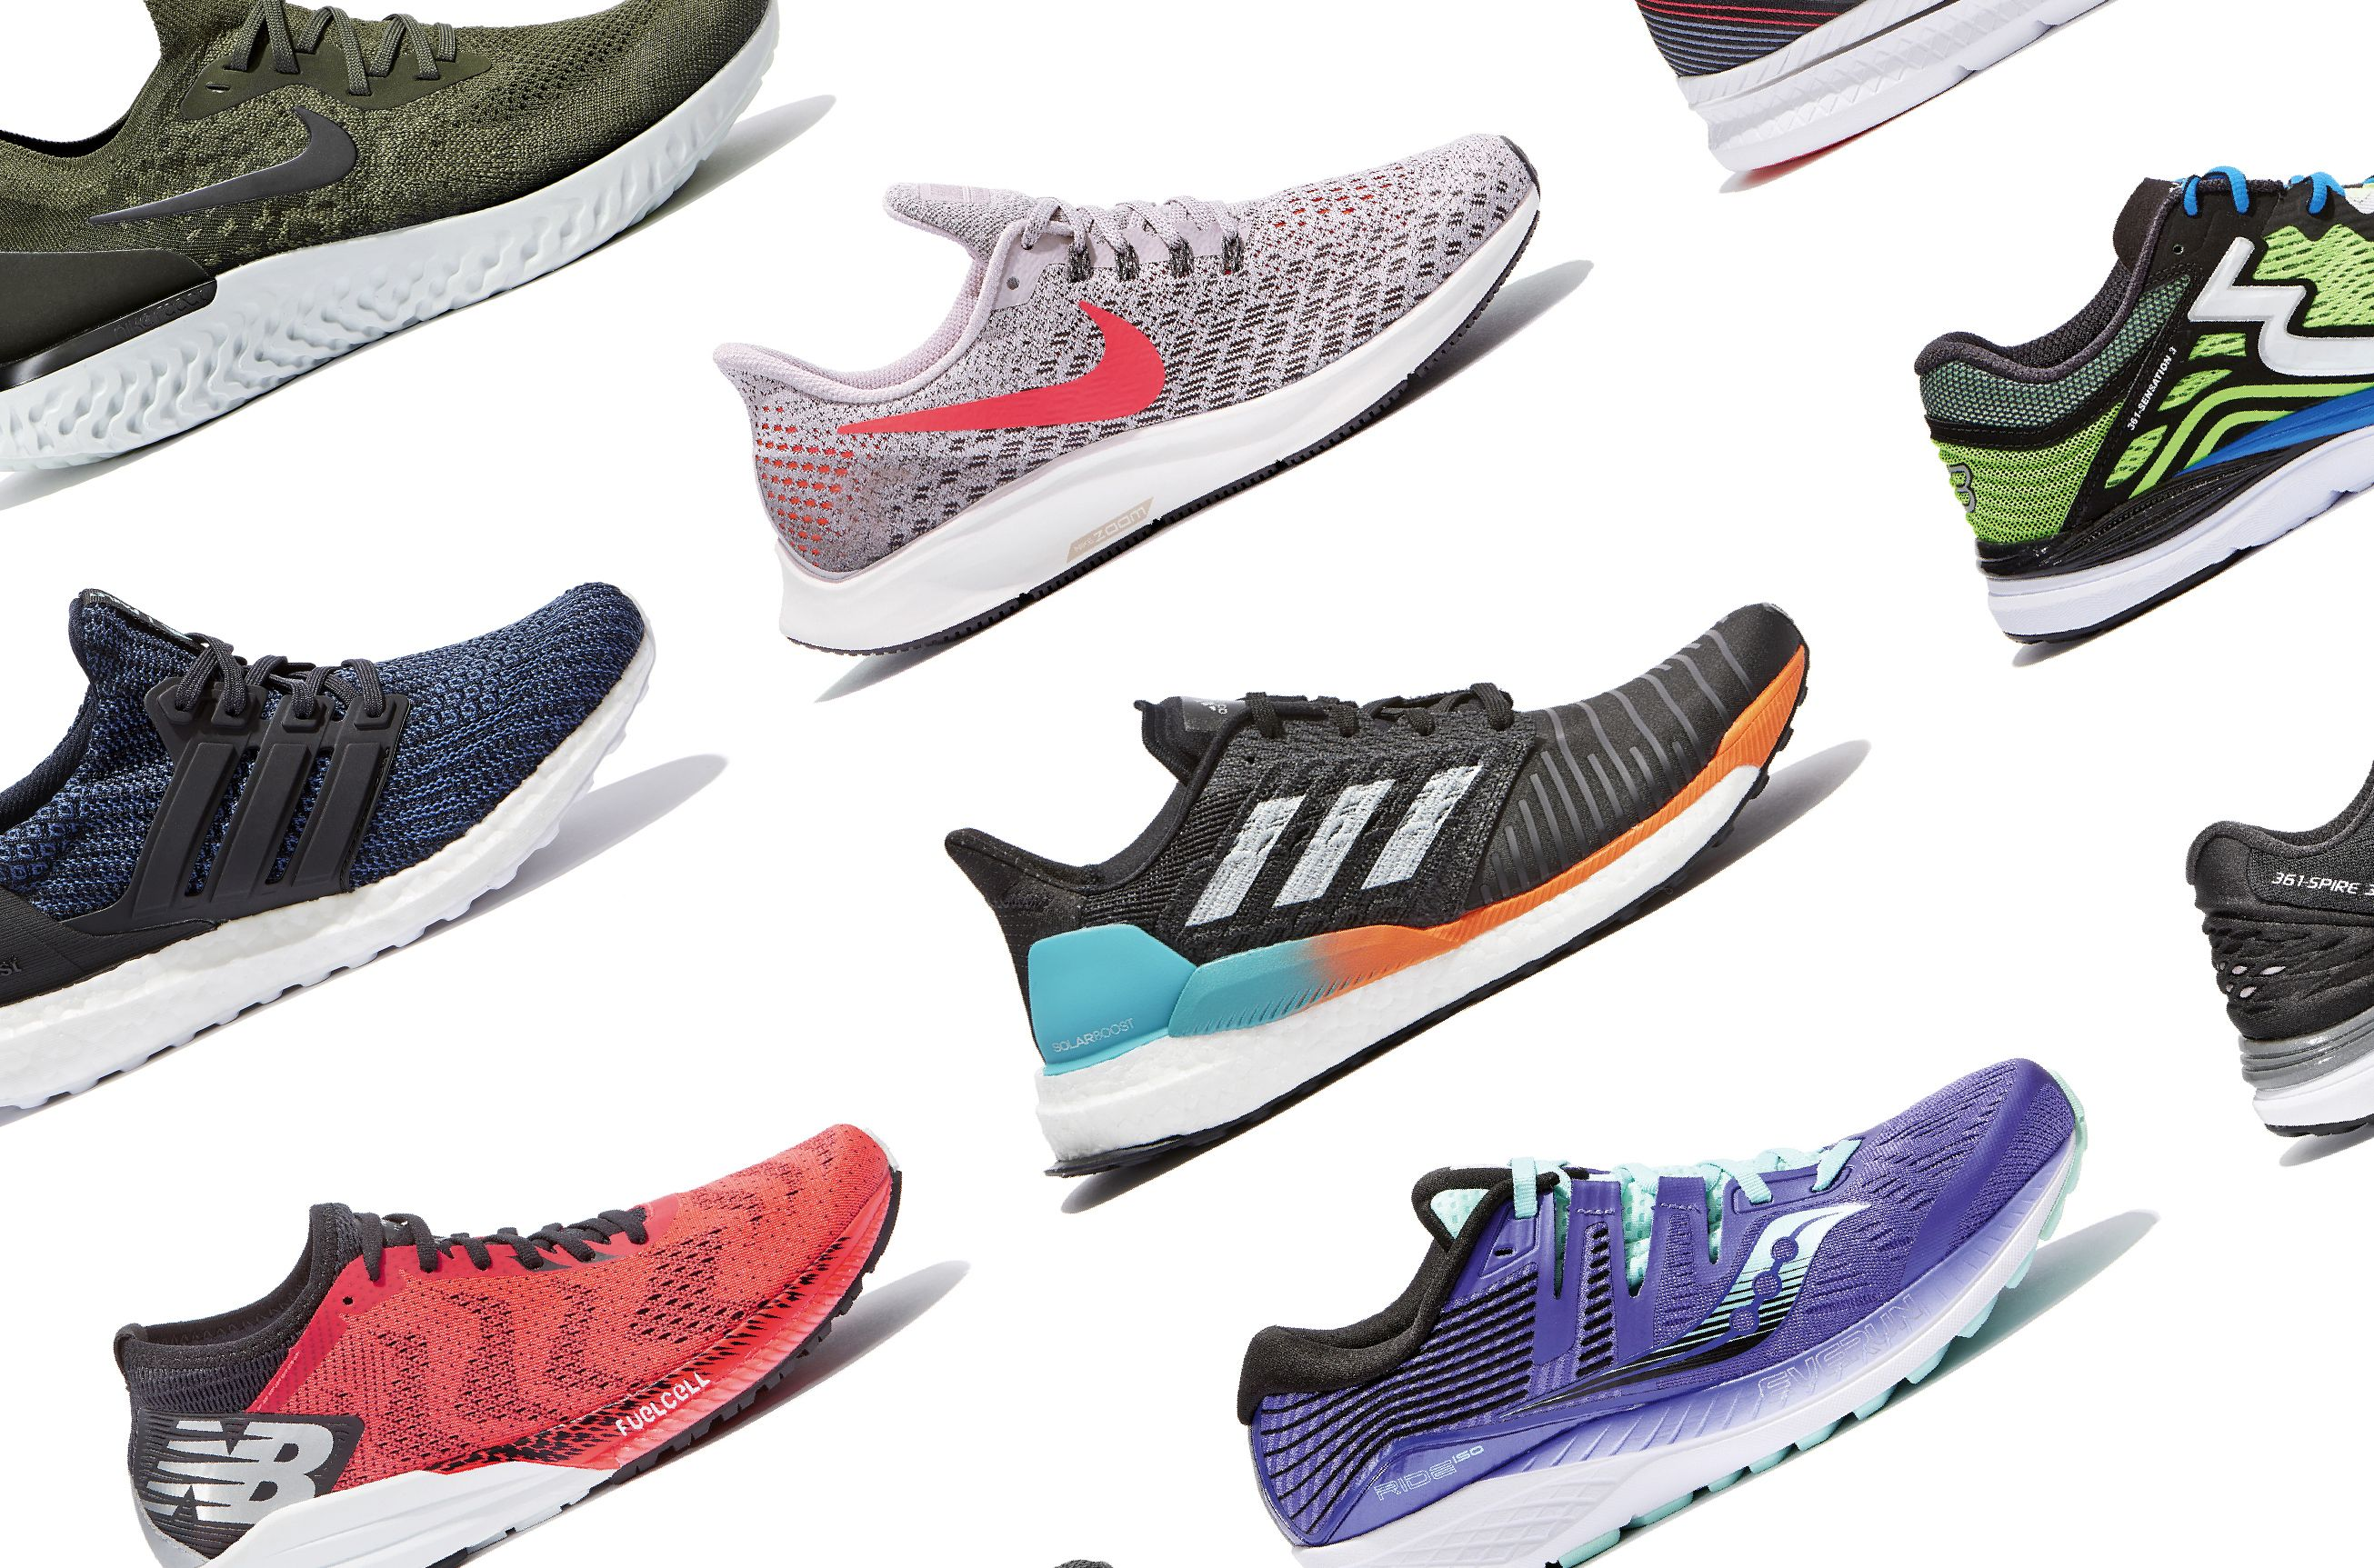 The best running shoes 2018: the best male and female running trainers, tested in the lab and on the road